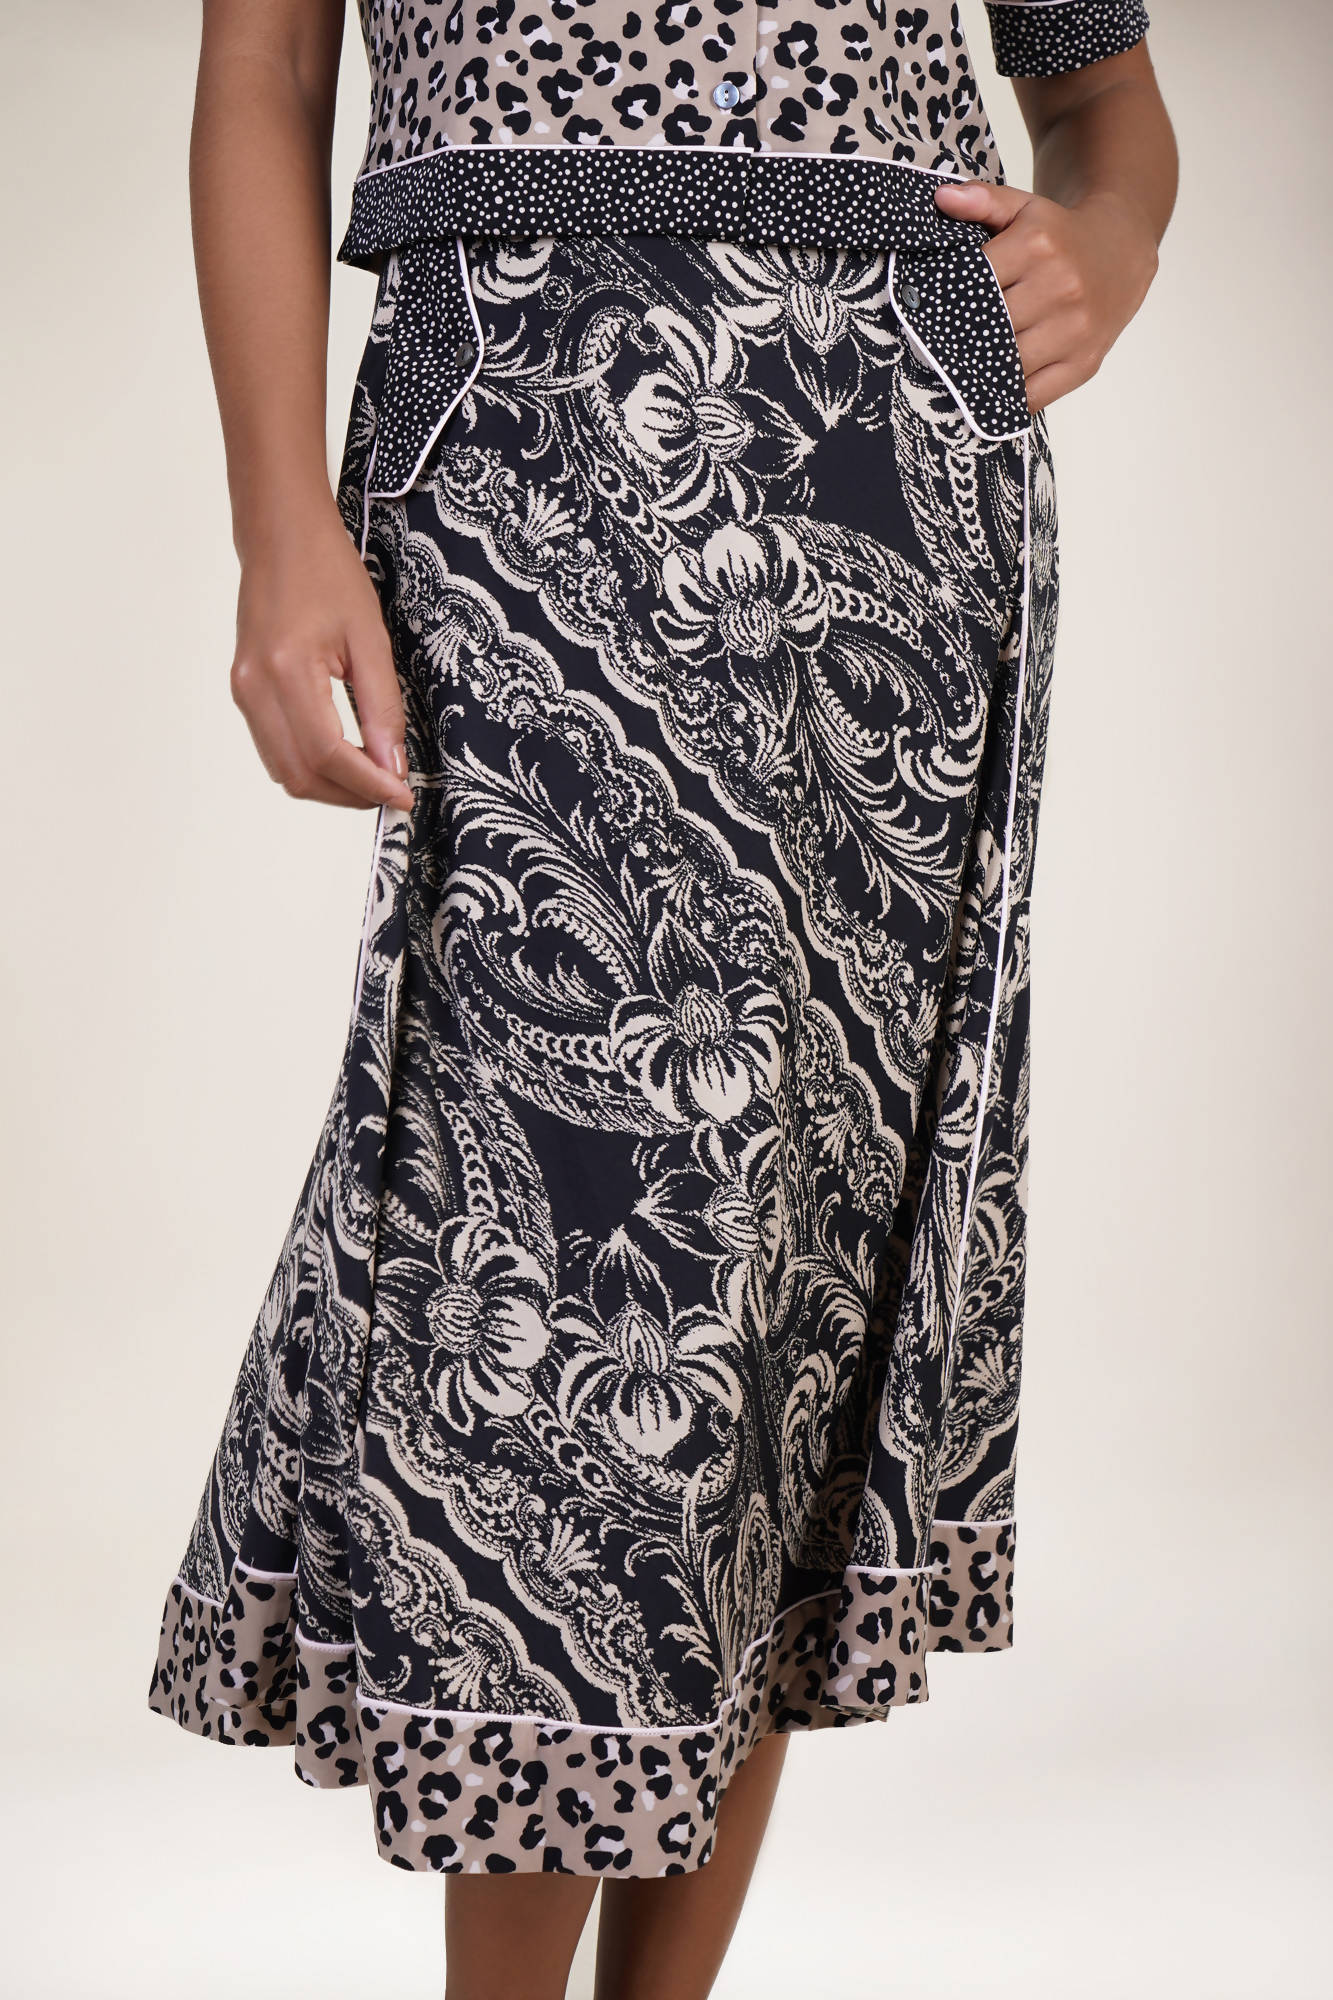 Westlock Skirt in Feline Pride